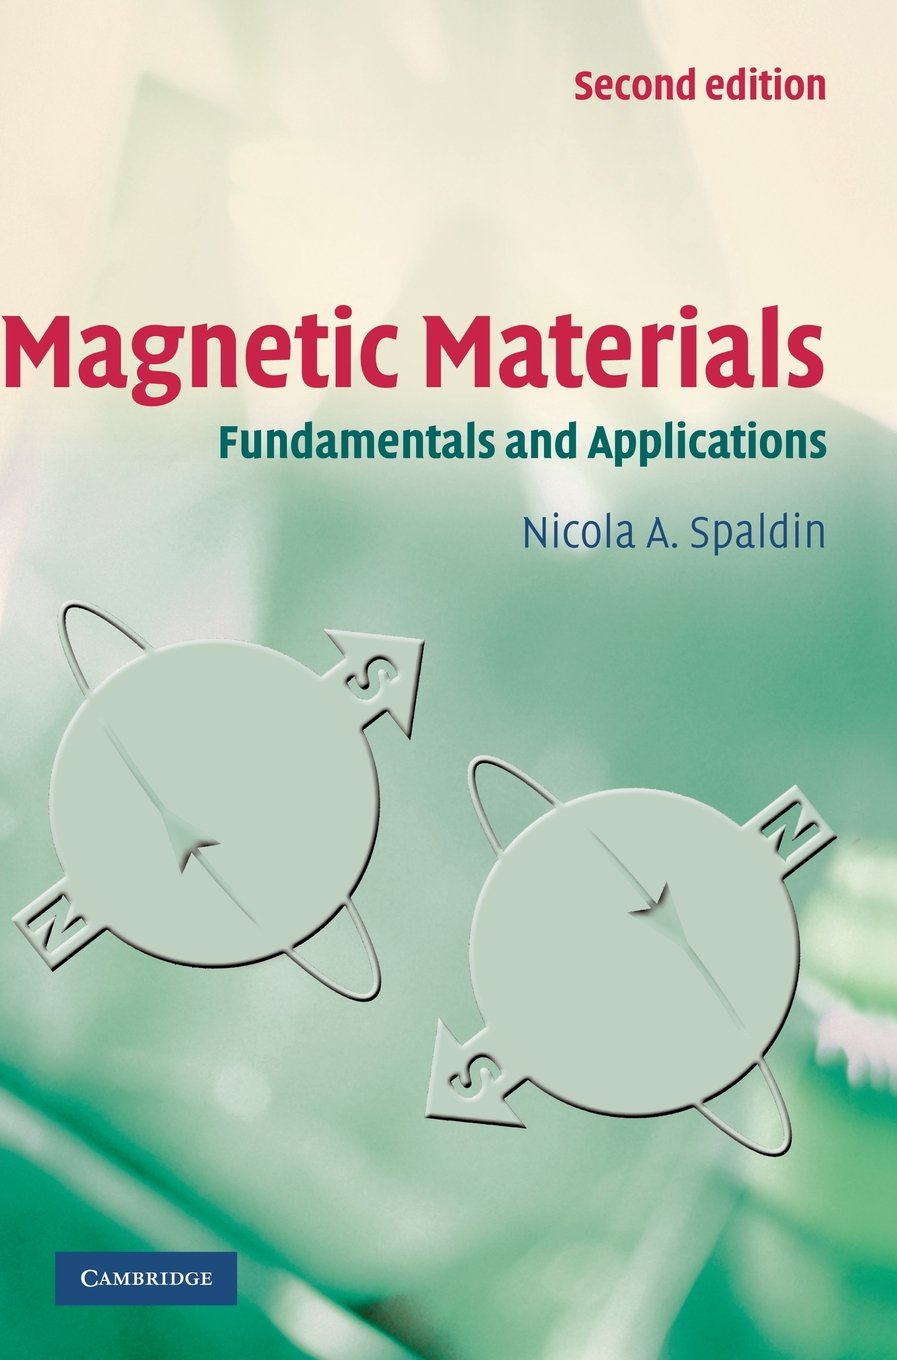 Magnetic Materials: Fundamentals and Applications. 2010